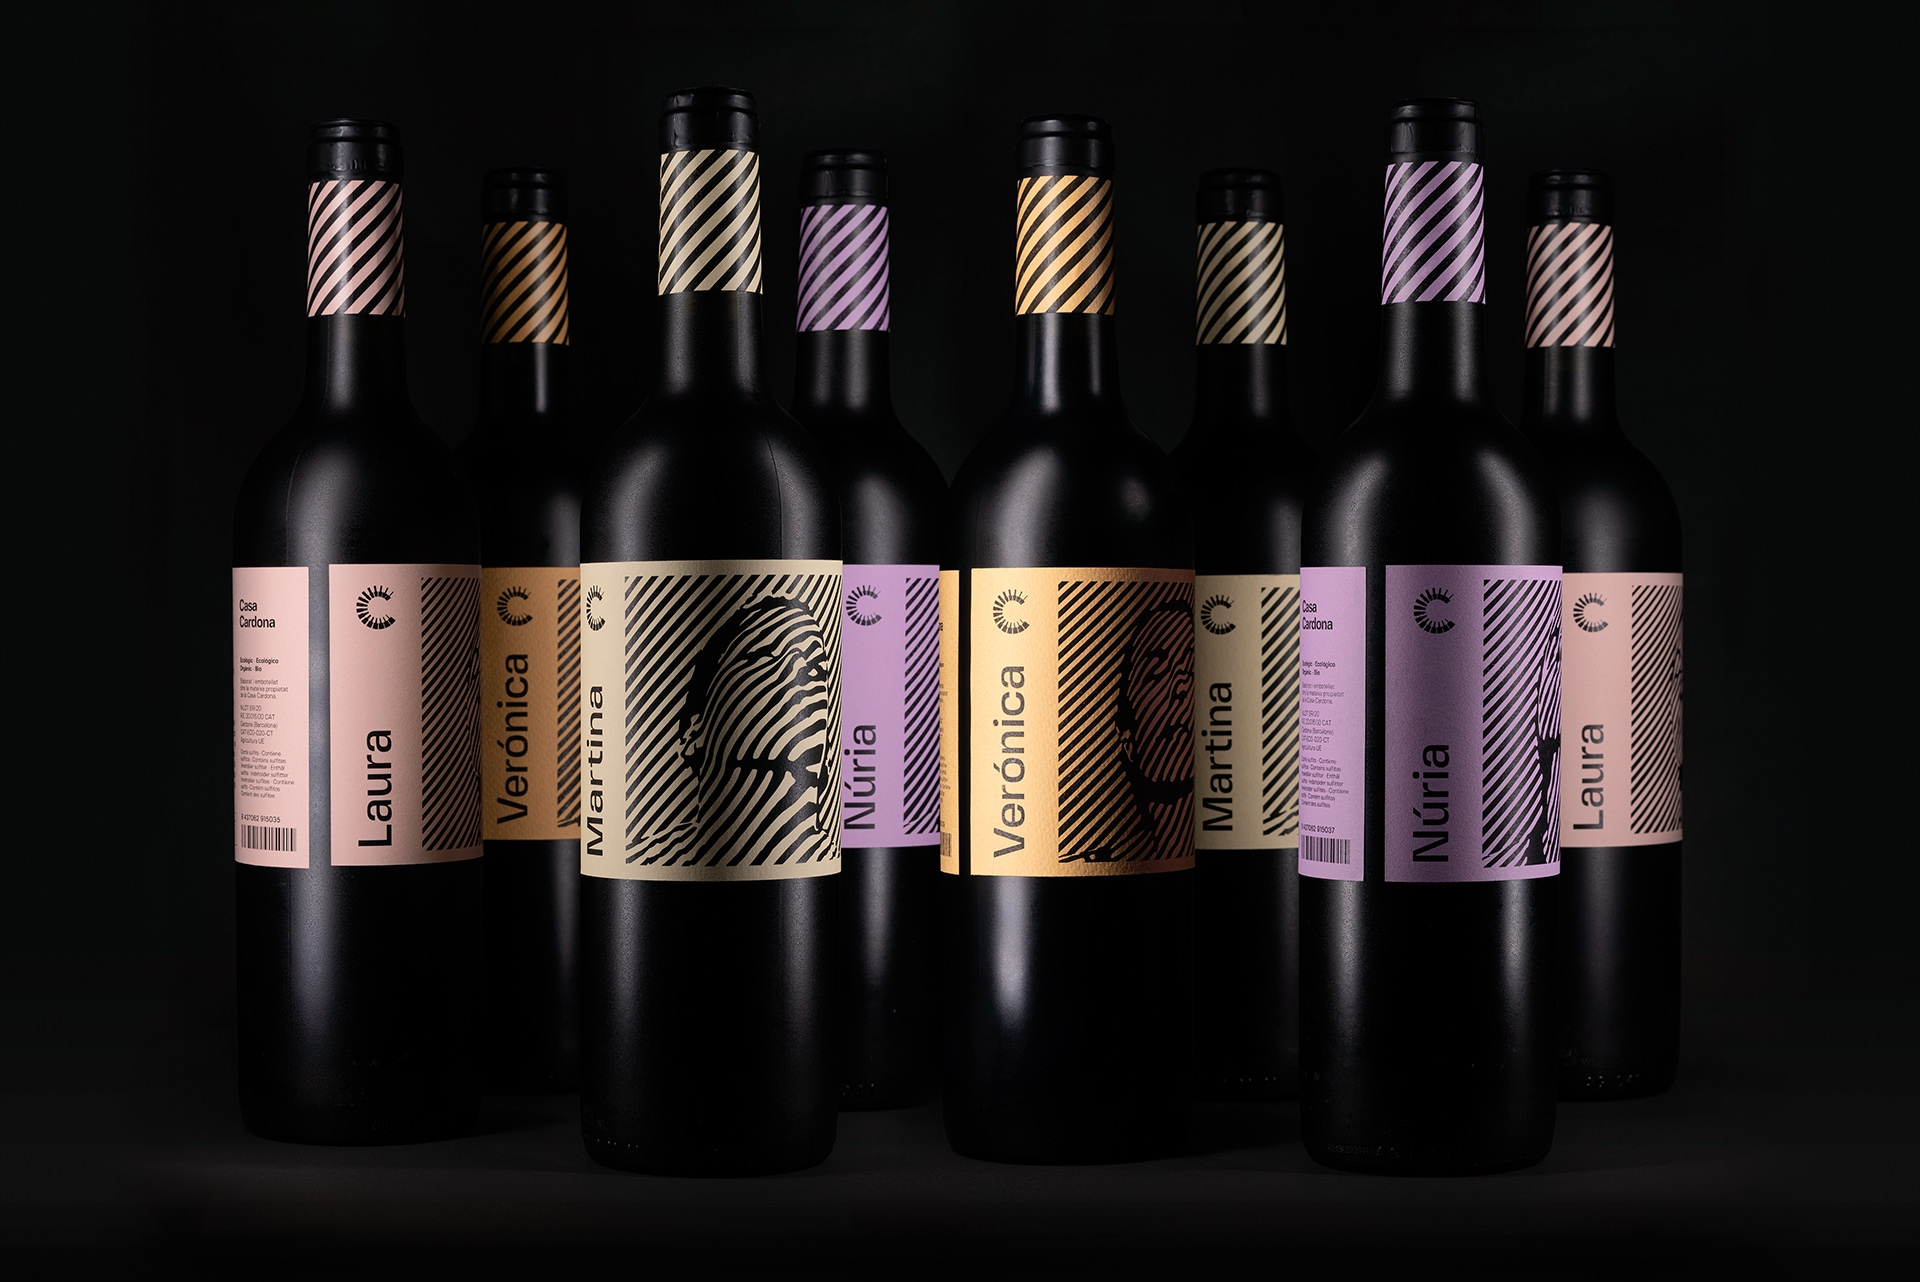 Wine Label Design Inspired by 1960s Op-art